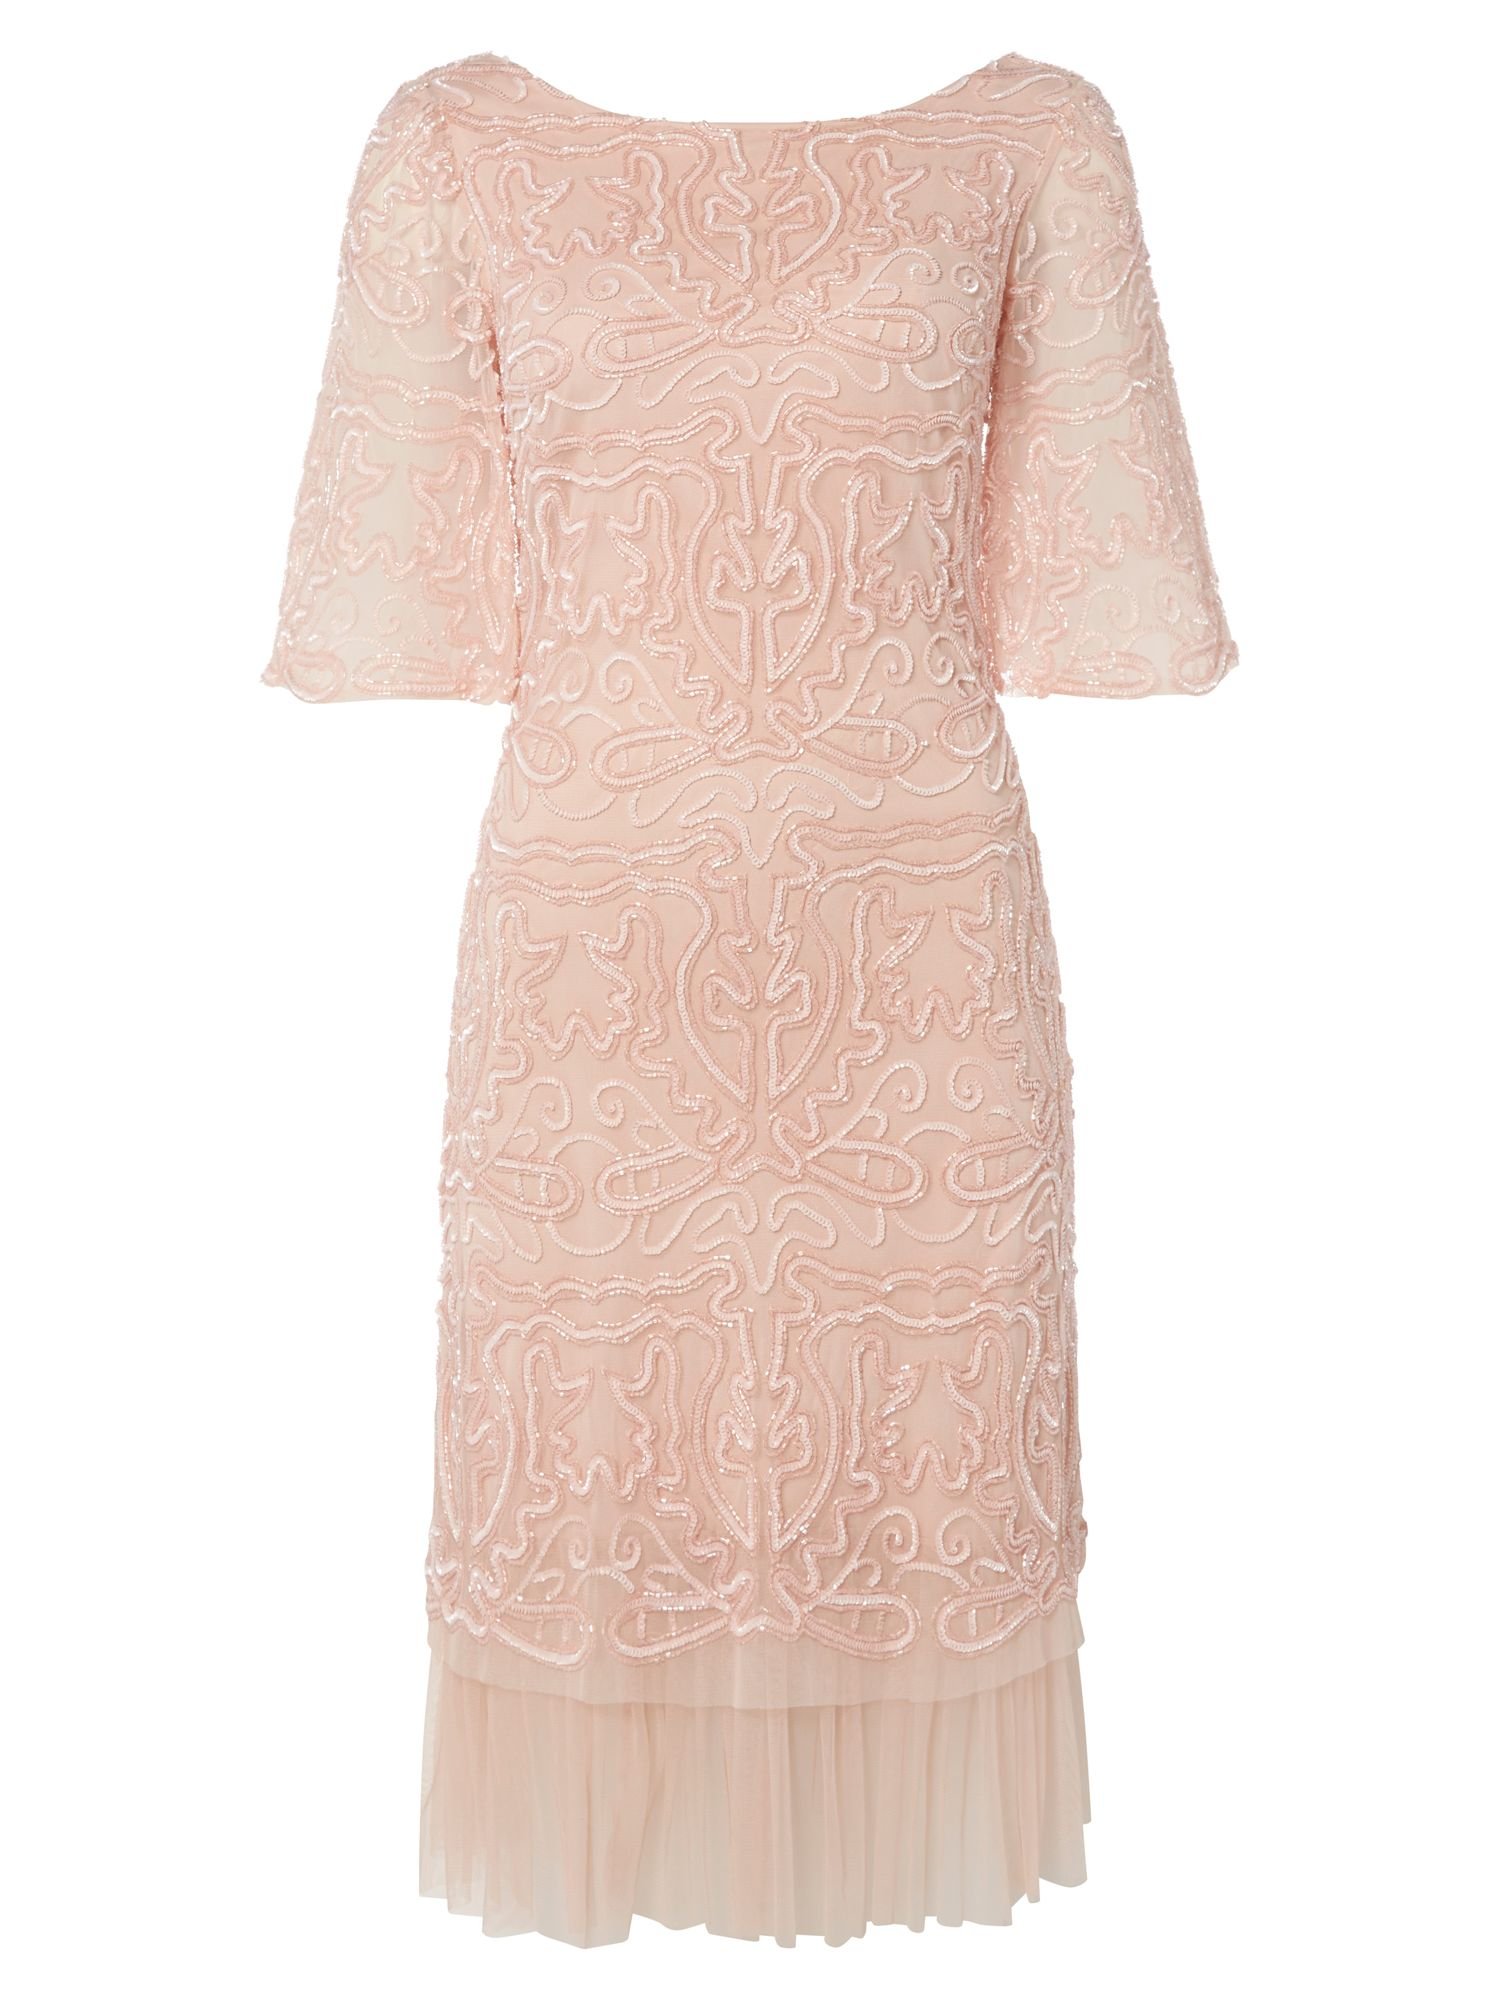 RAISHMA Bell Sleeve Embroidered Dress, Pink